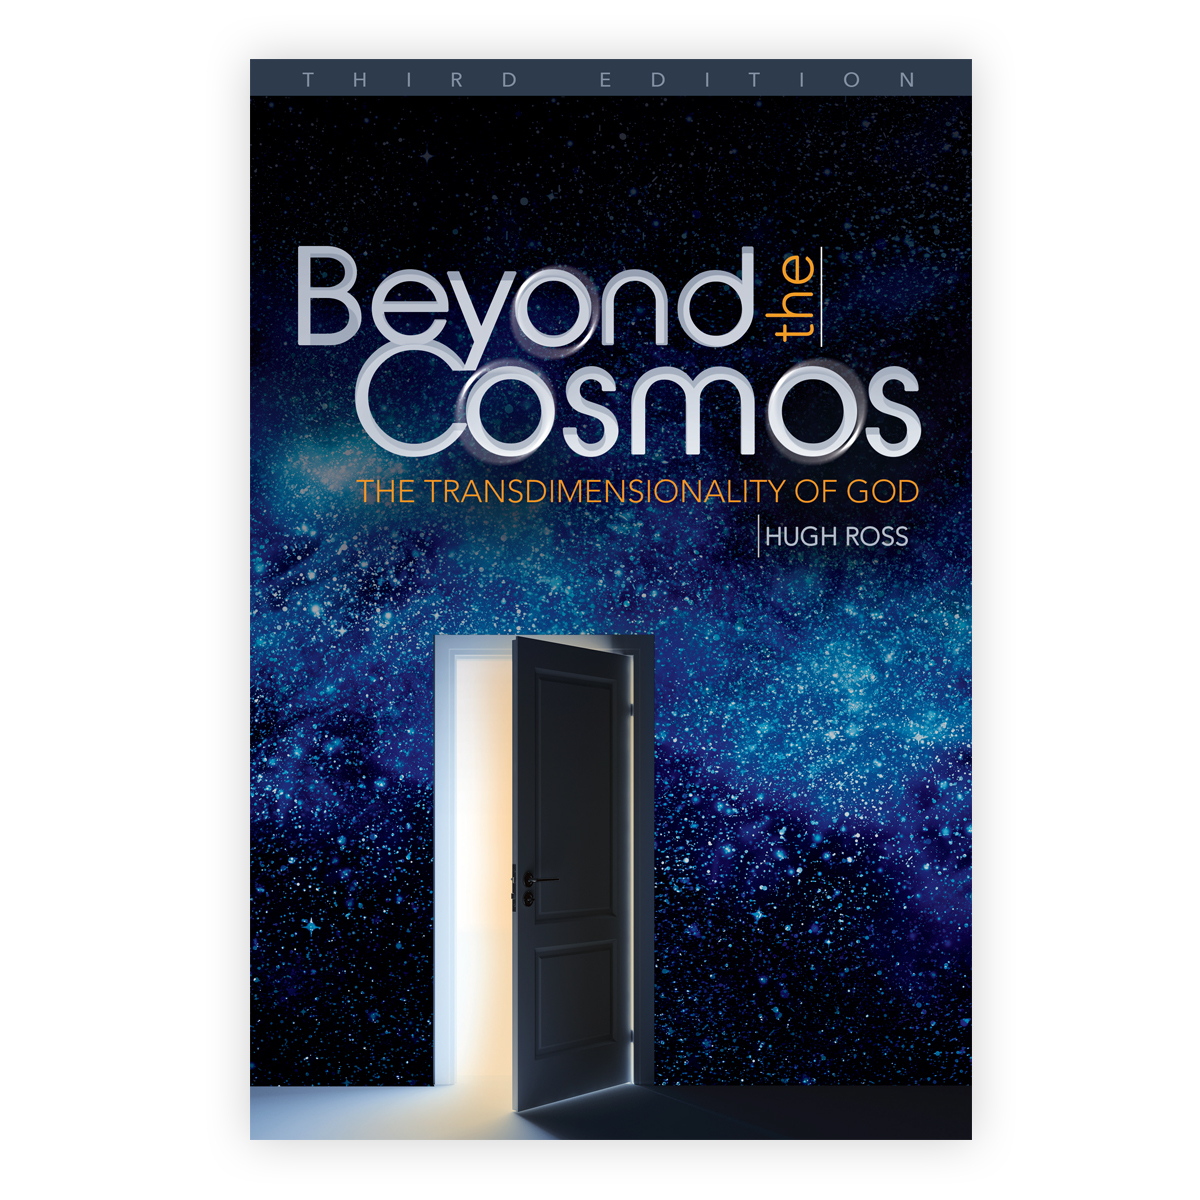 Beyond the Cosmos, 3rd Edition Image